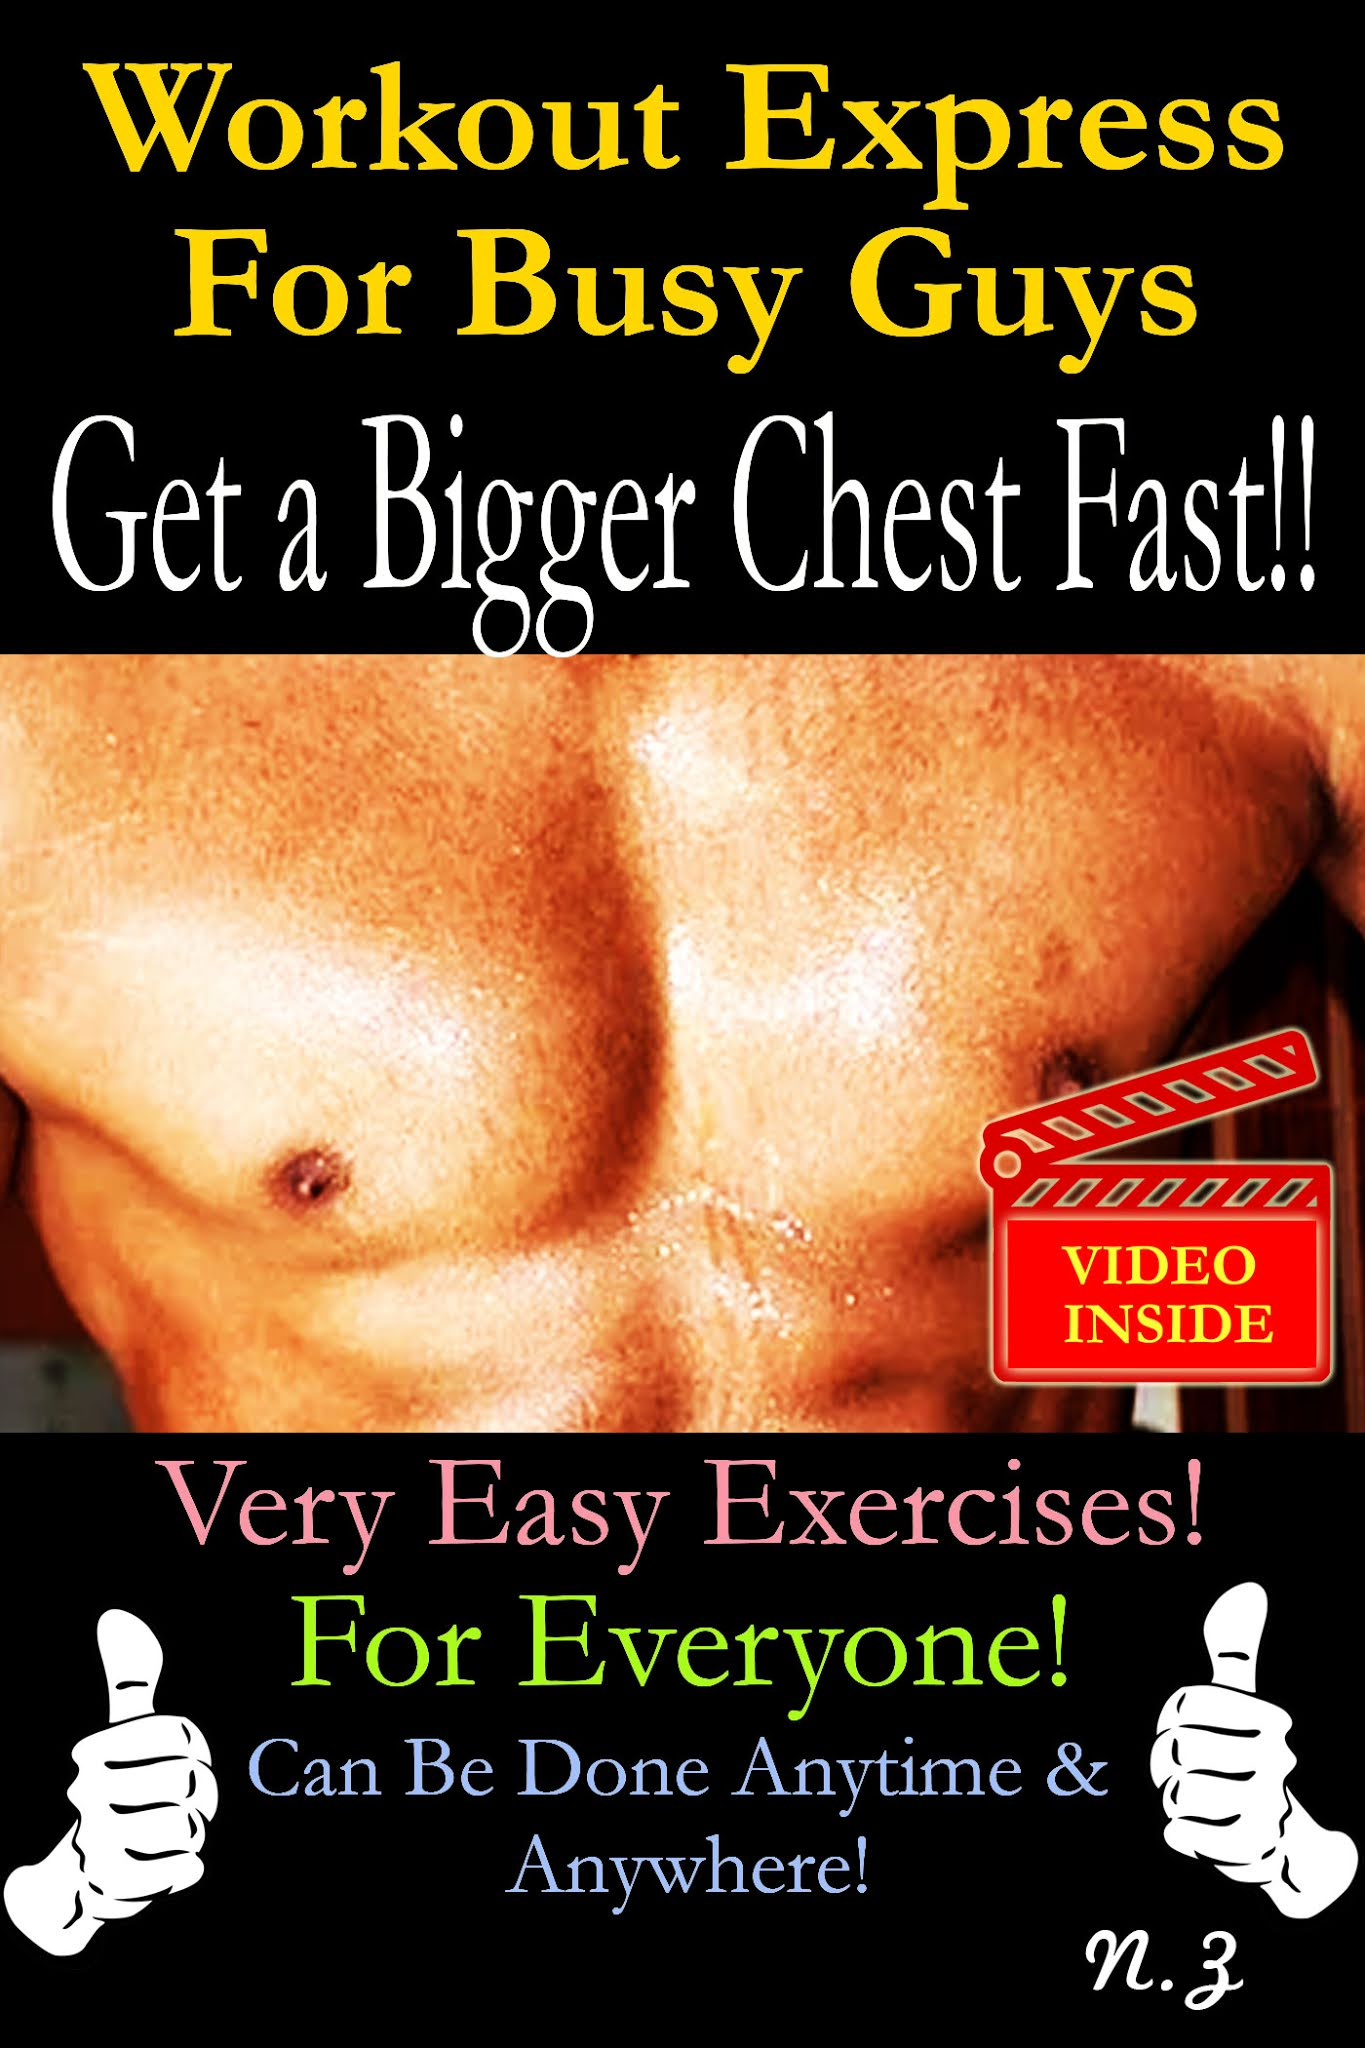 Workout Express For Busy Guys: Get A Bigger Chest Fast!!